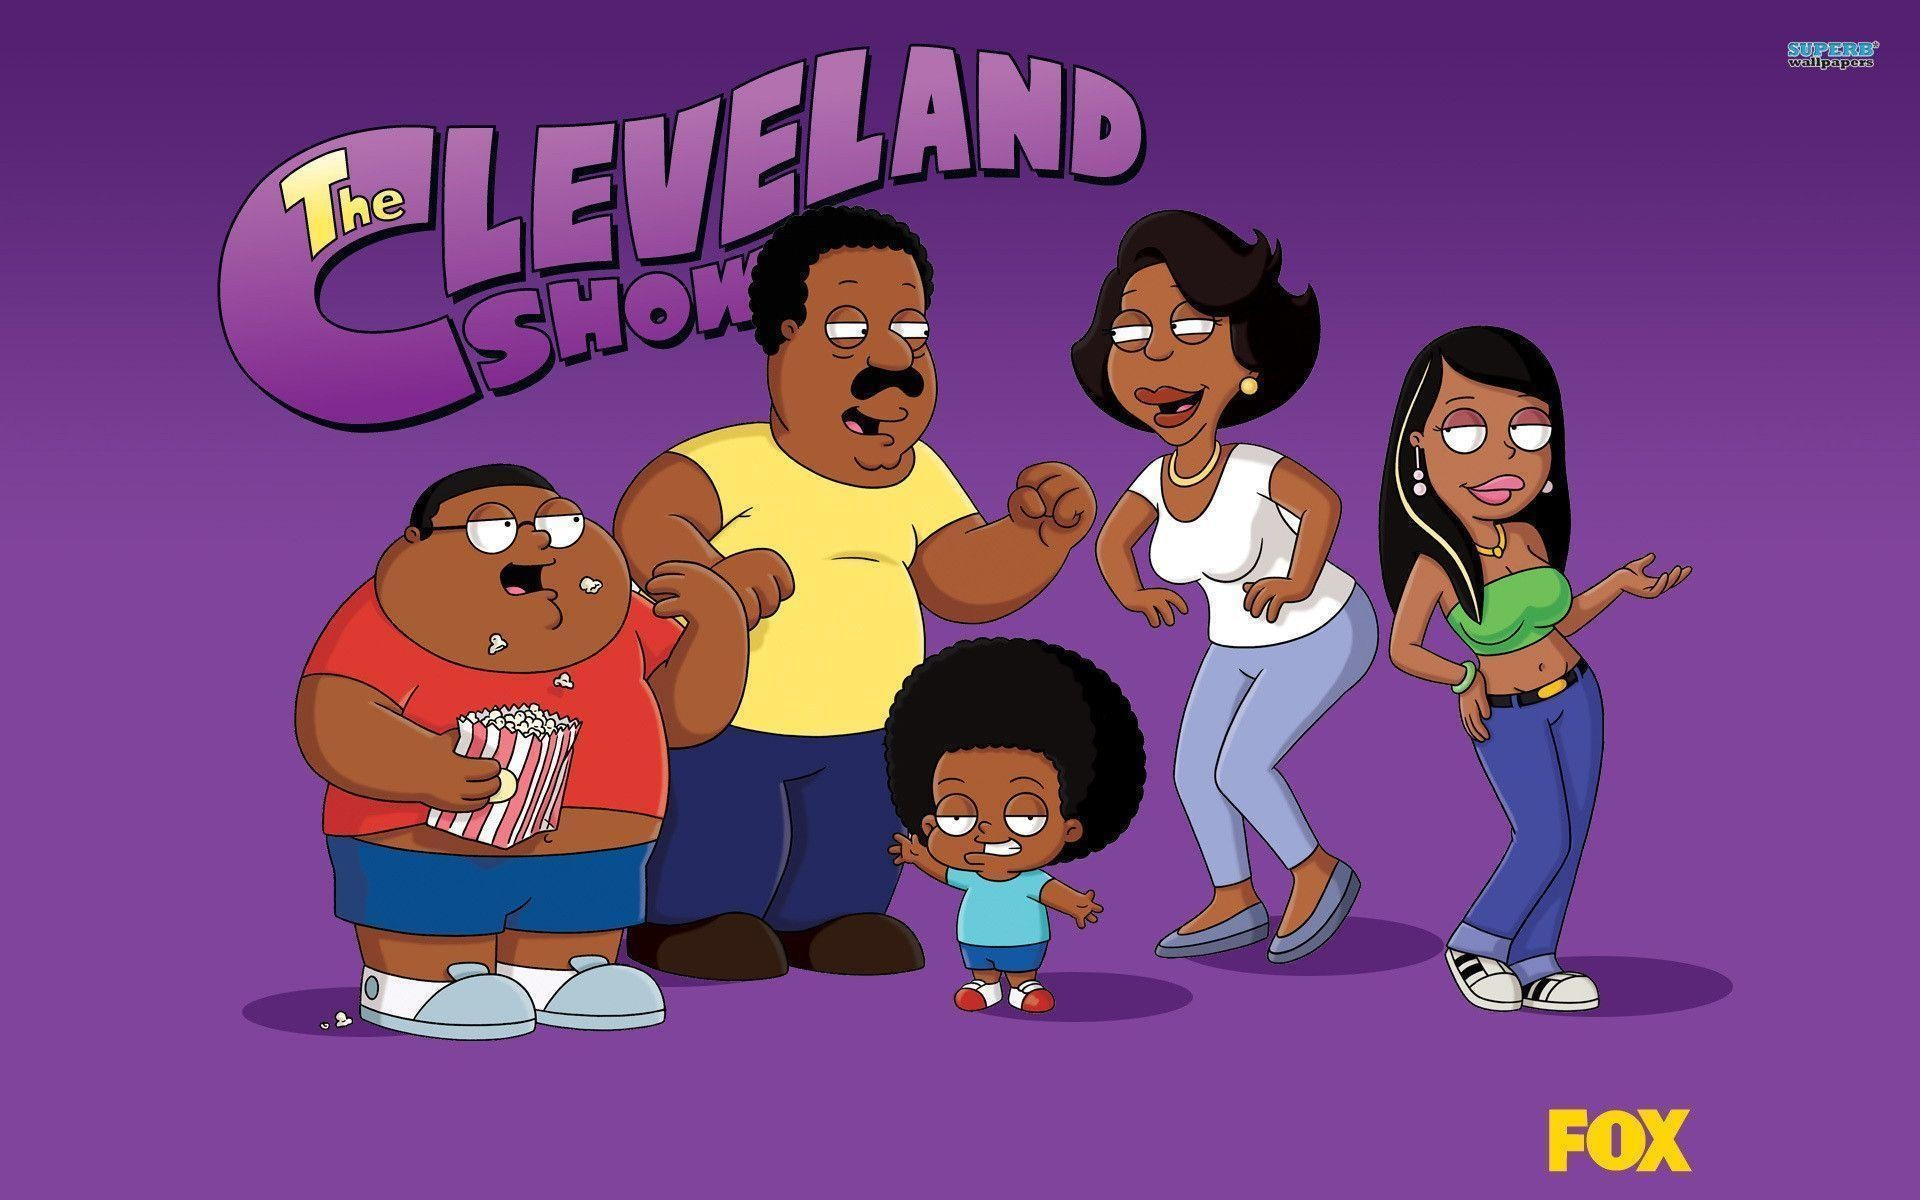 1920x1200 The Cleveland Show wallpaper - Cartoon wallpapers - #